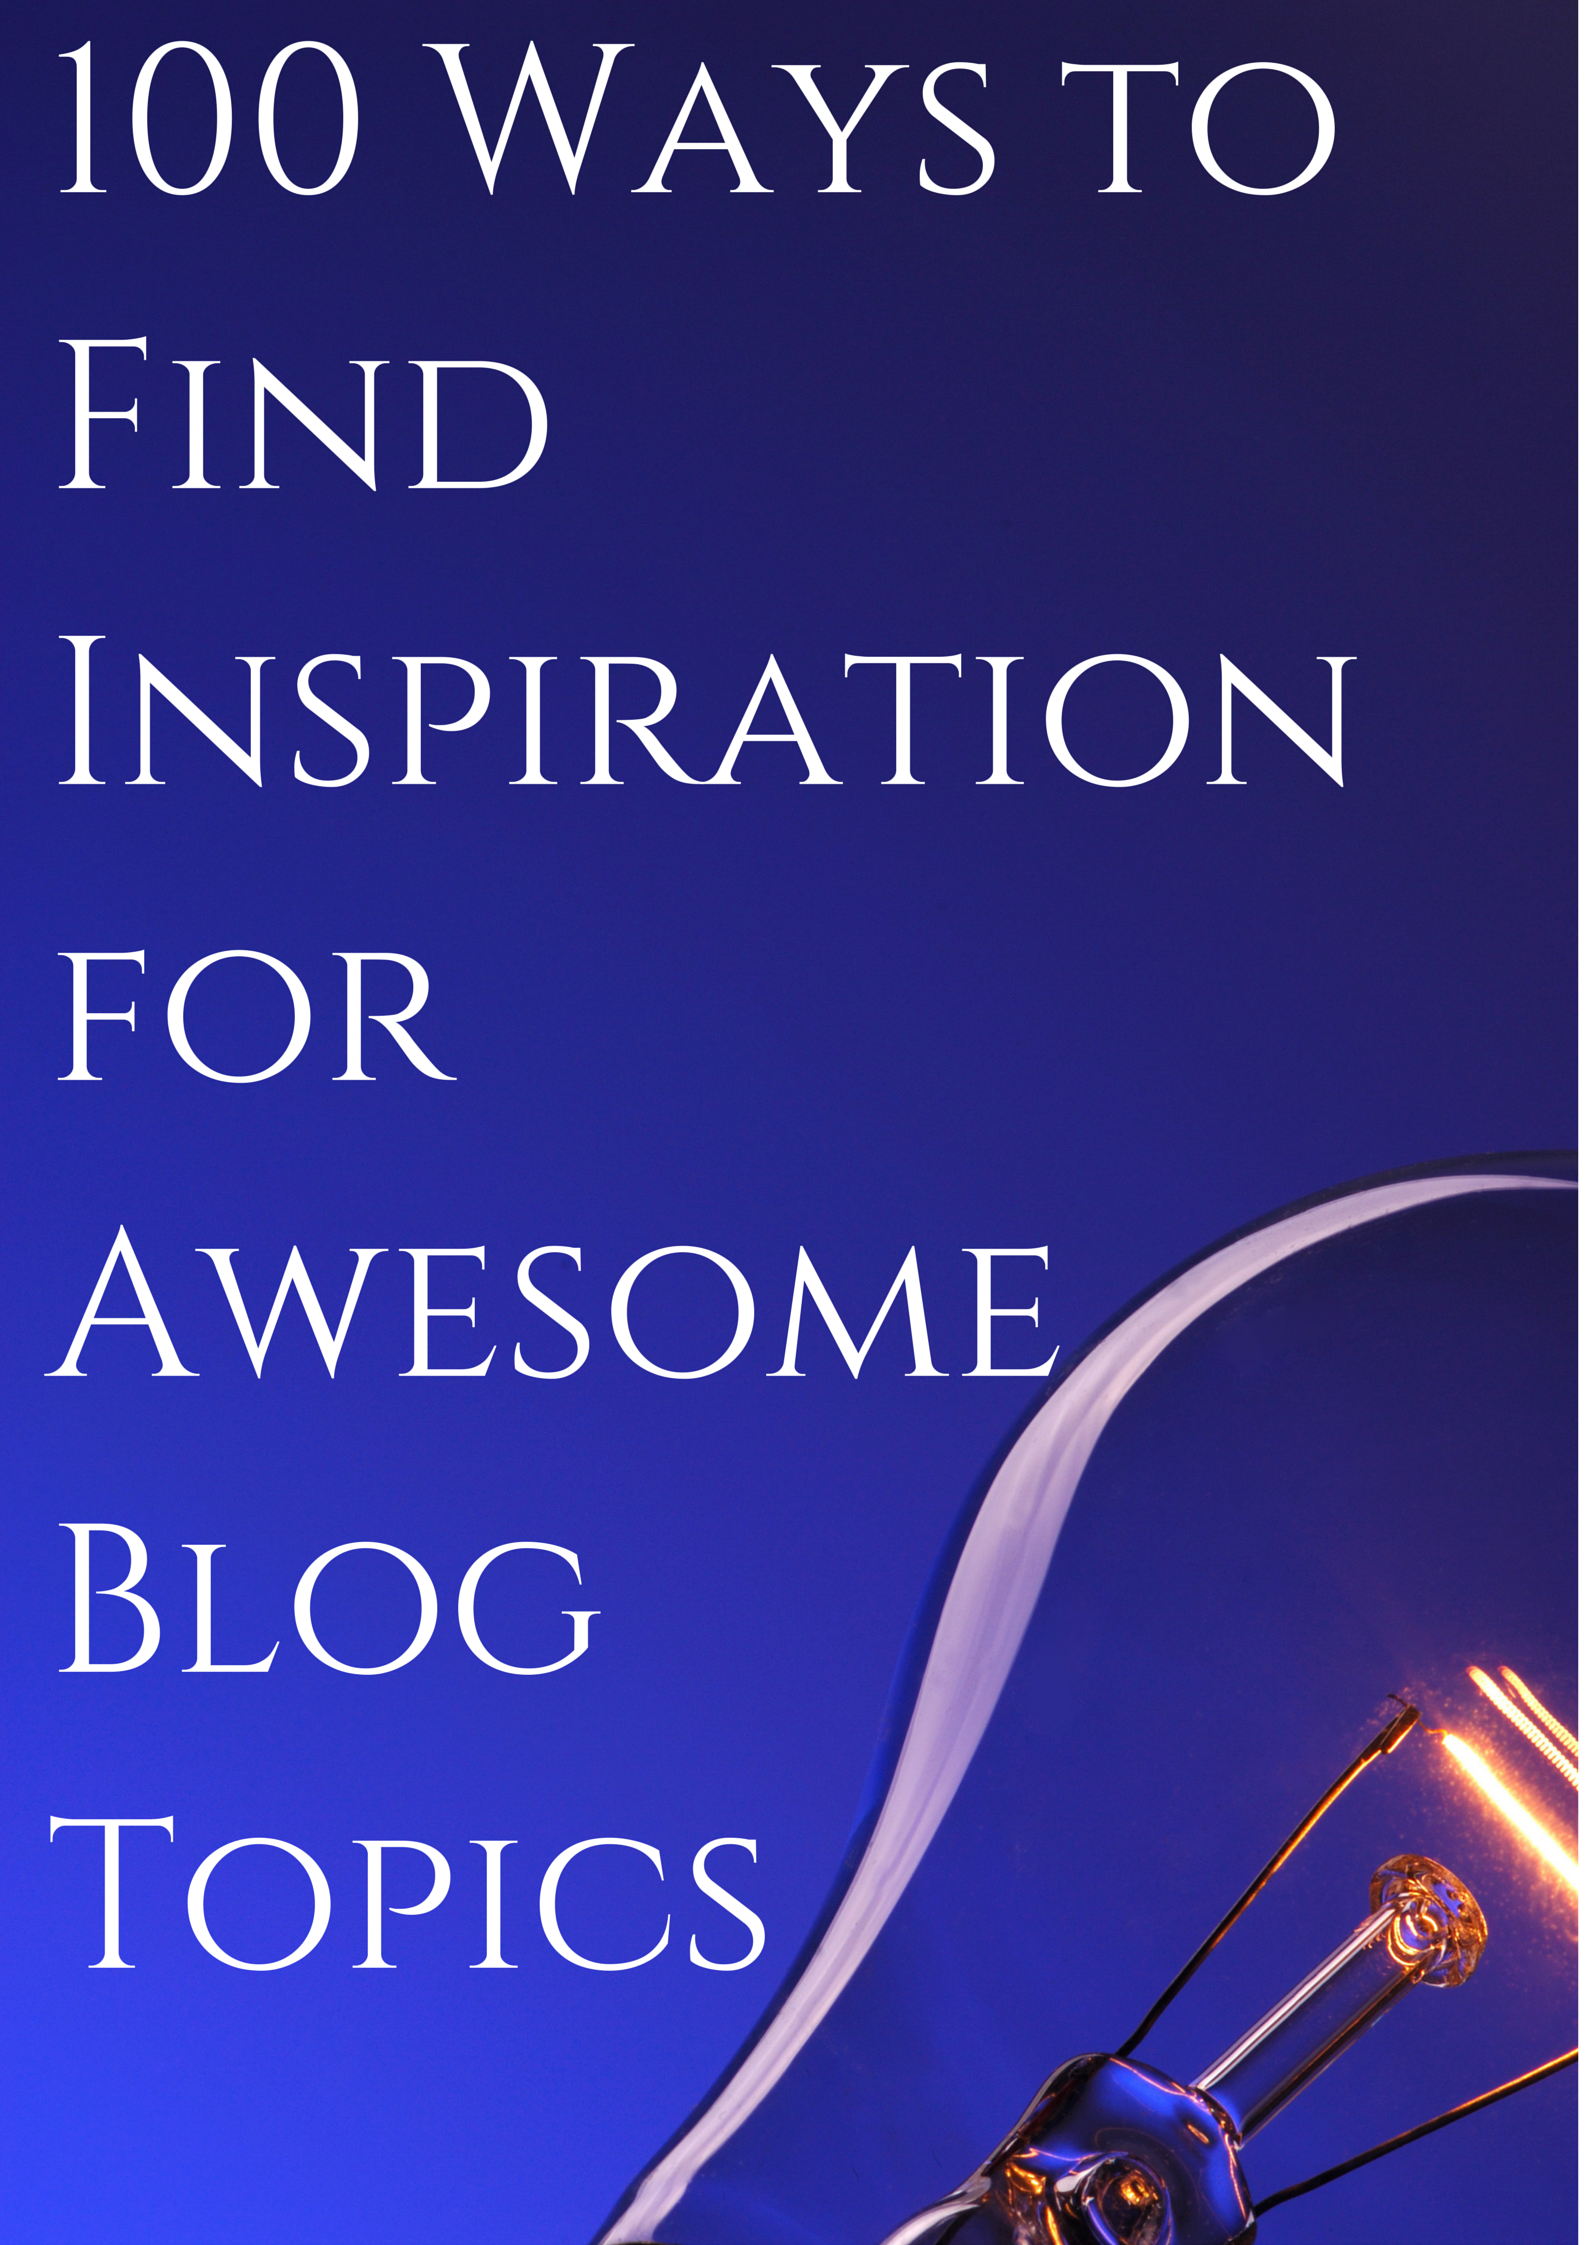 100 Ways to Find Inspiration for Awesome Blog Topics